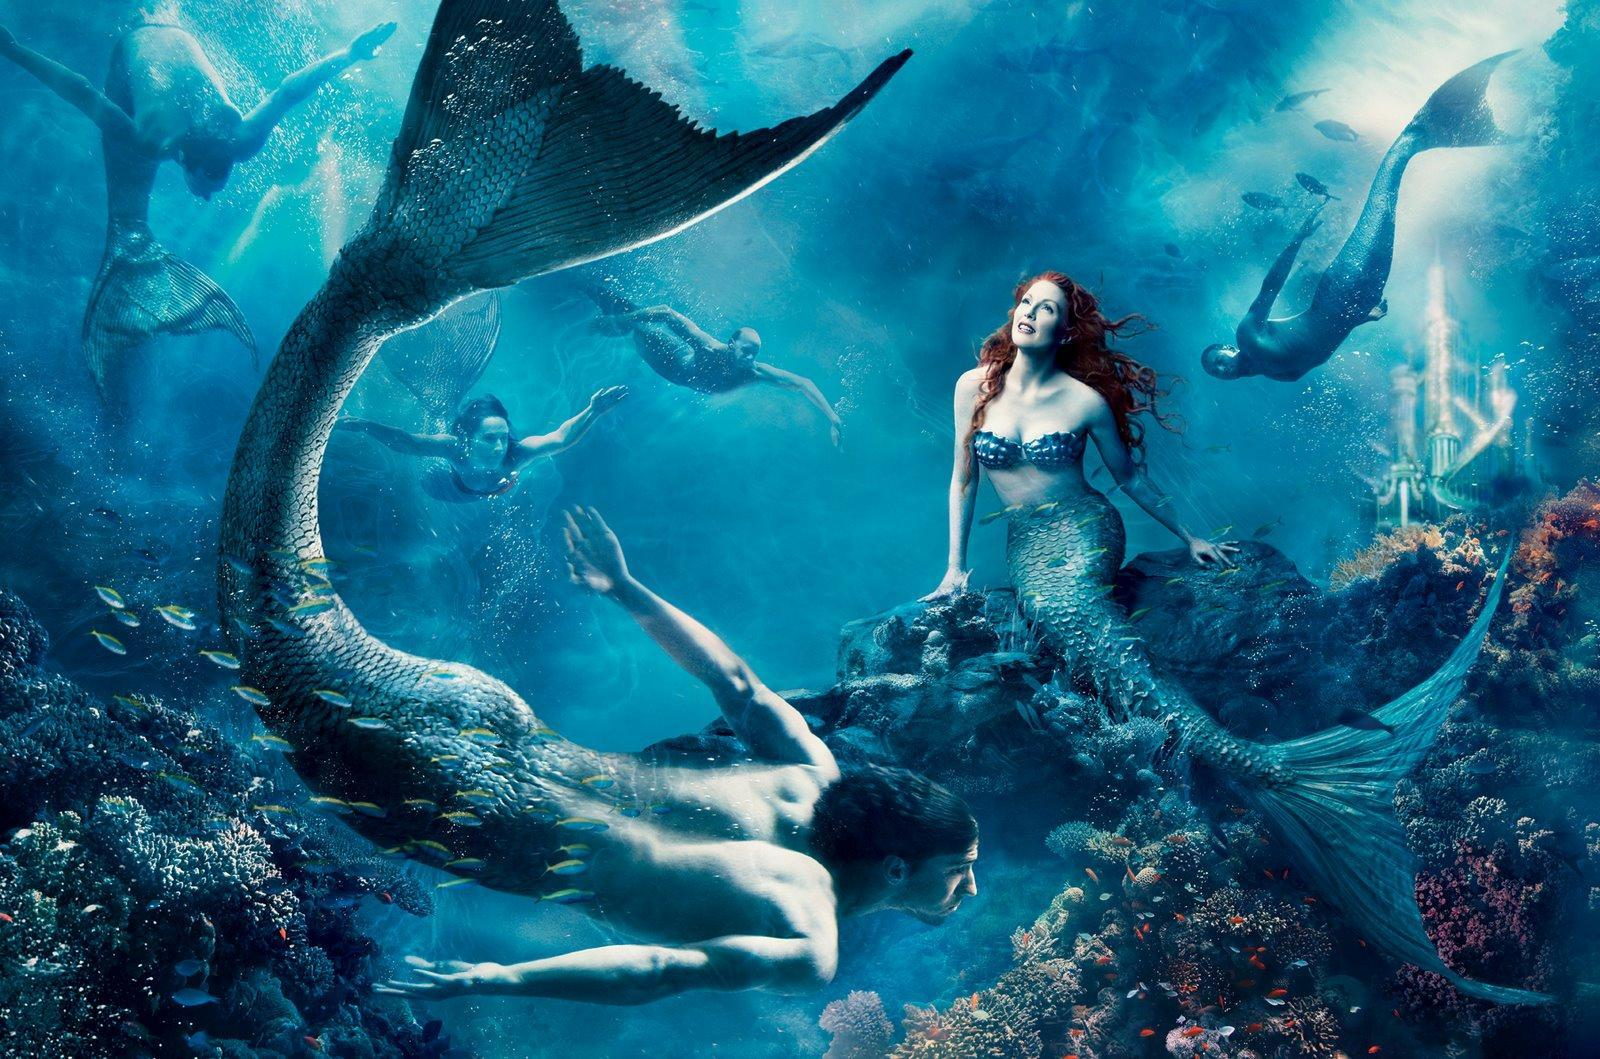 Wallpaper Mansion: Mermaids 3D Wallpaper